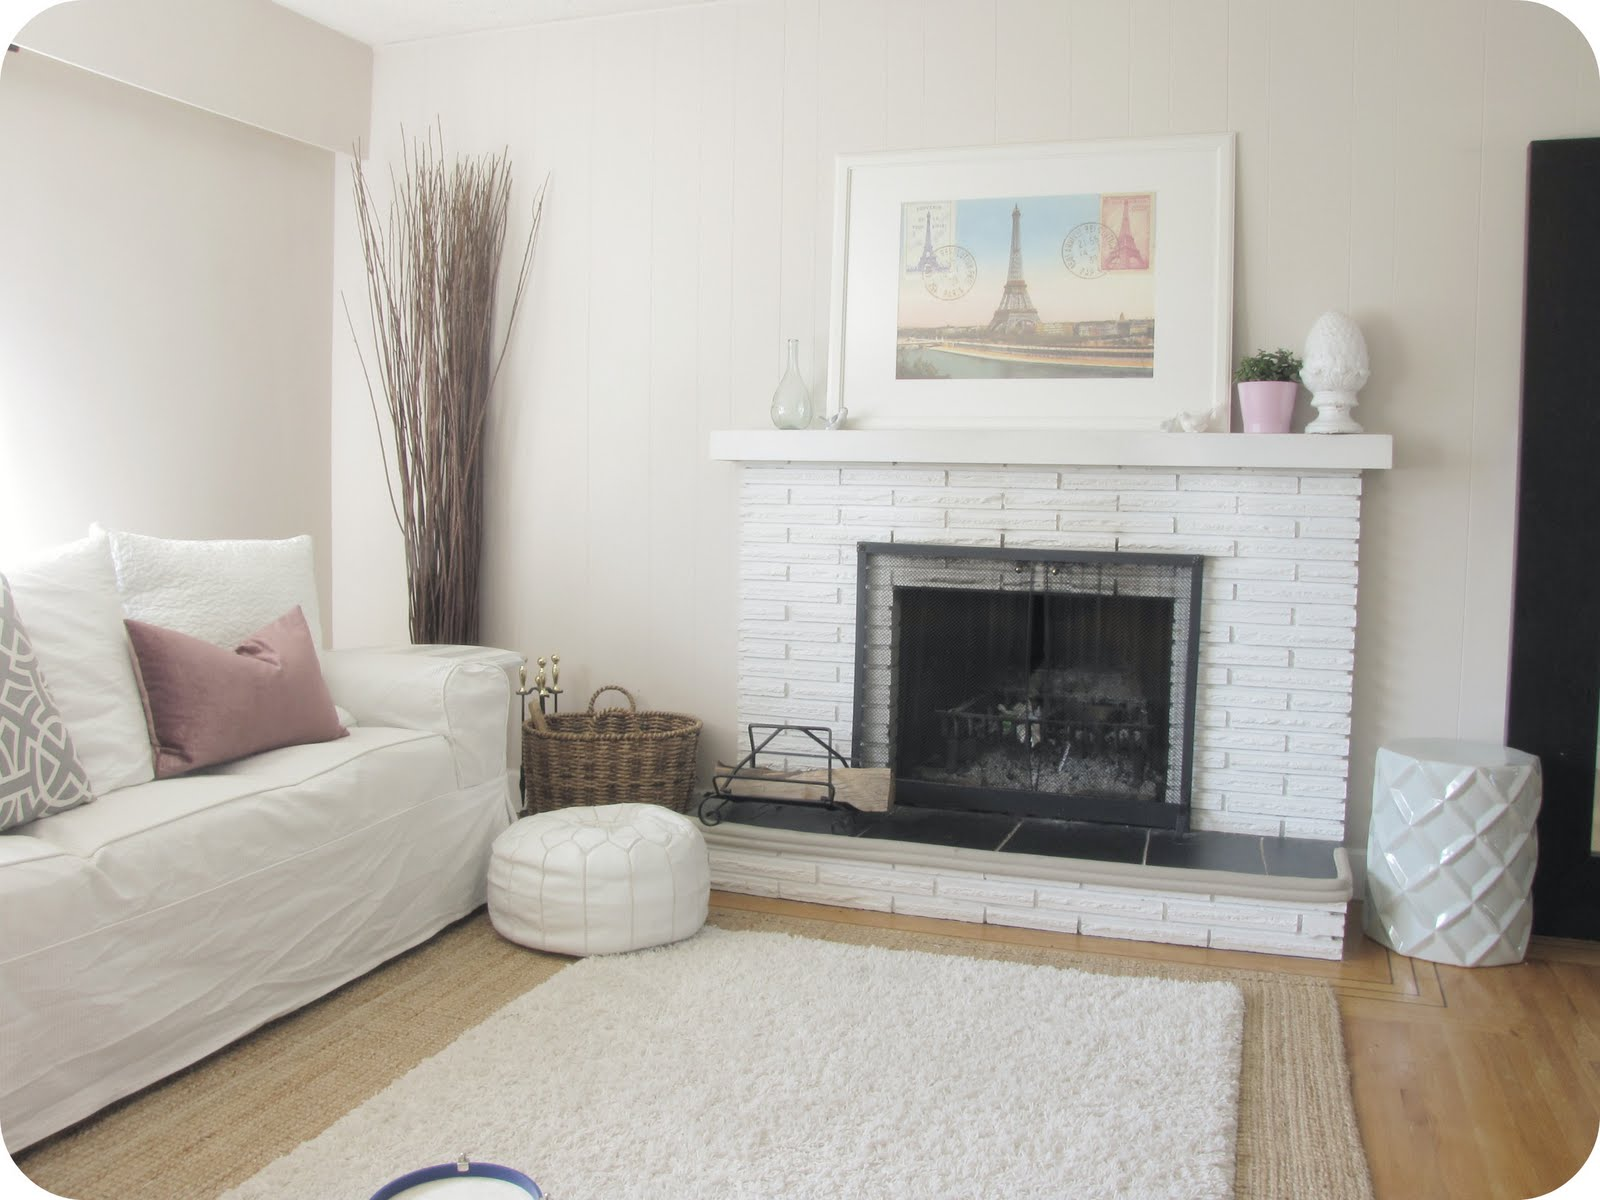 Nicole Miller Home Decor  Always Up to Date and Fashionable  HomesFeed